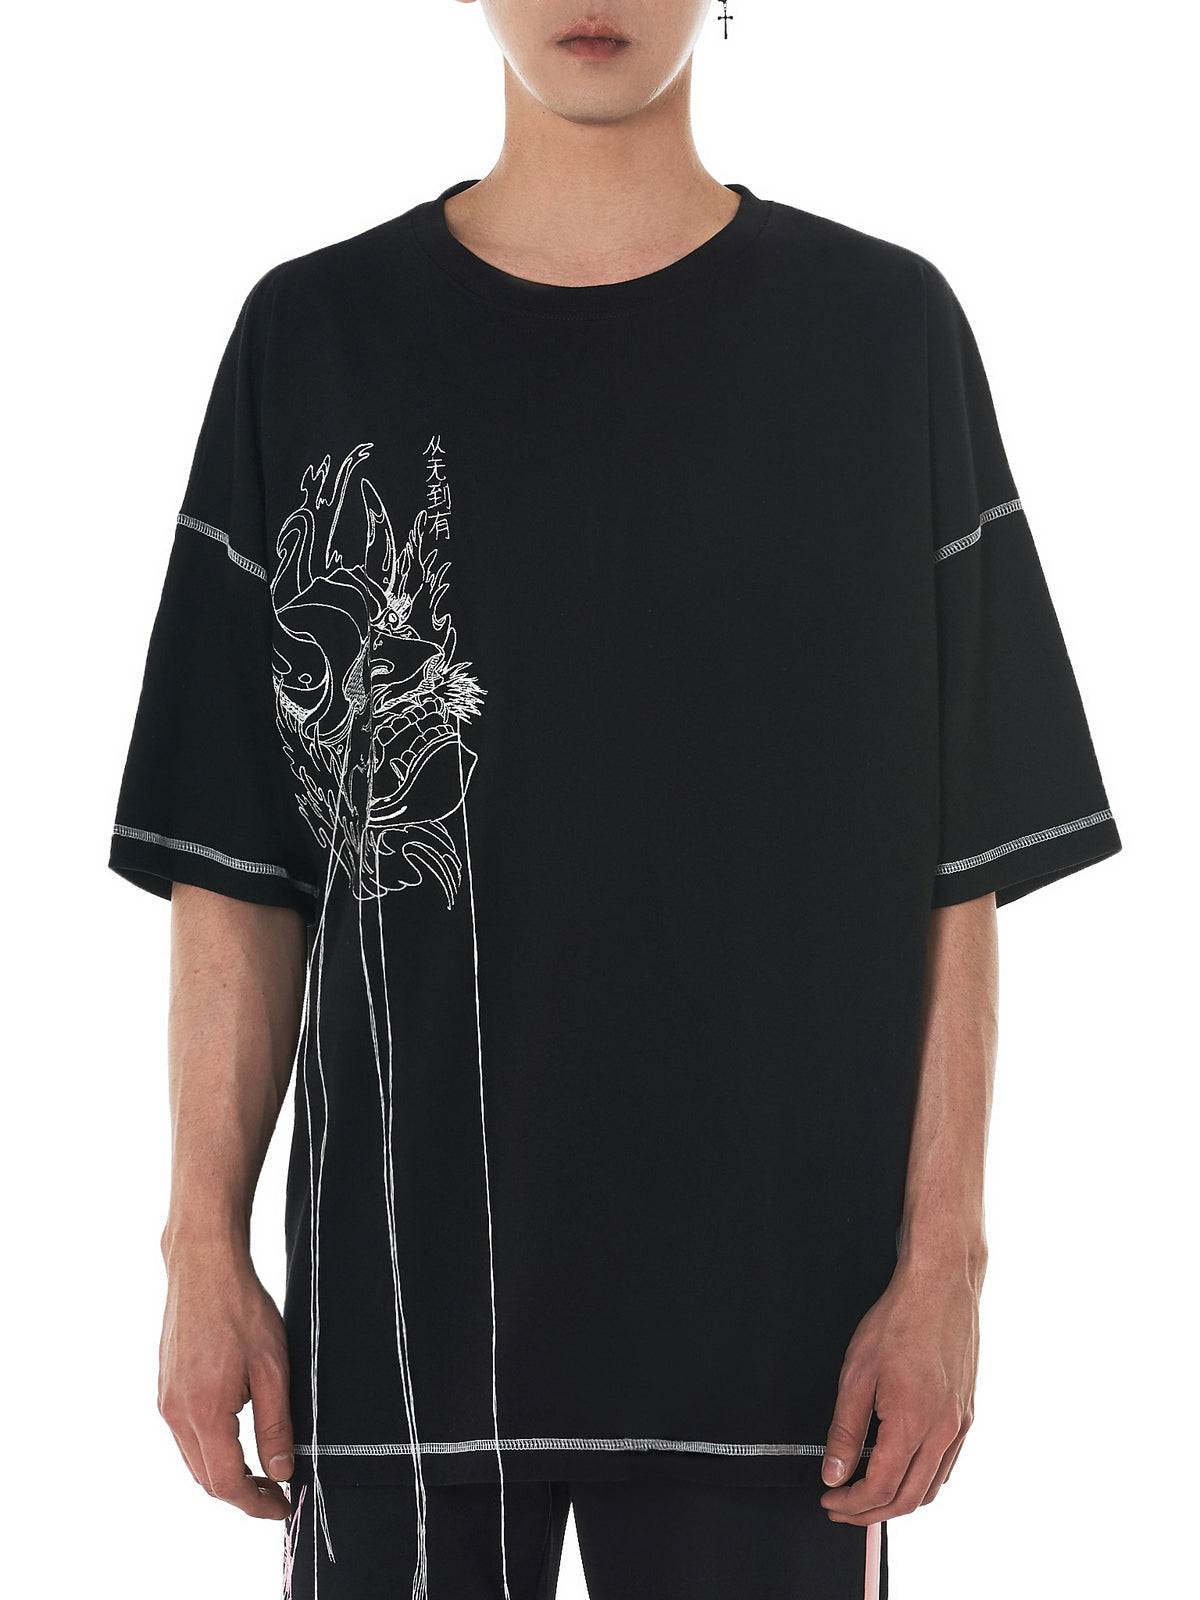 R. Shemiste Embroidery Tee - Hlorenzo front